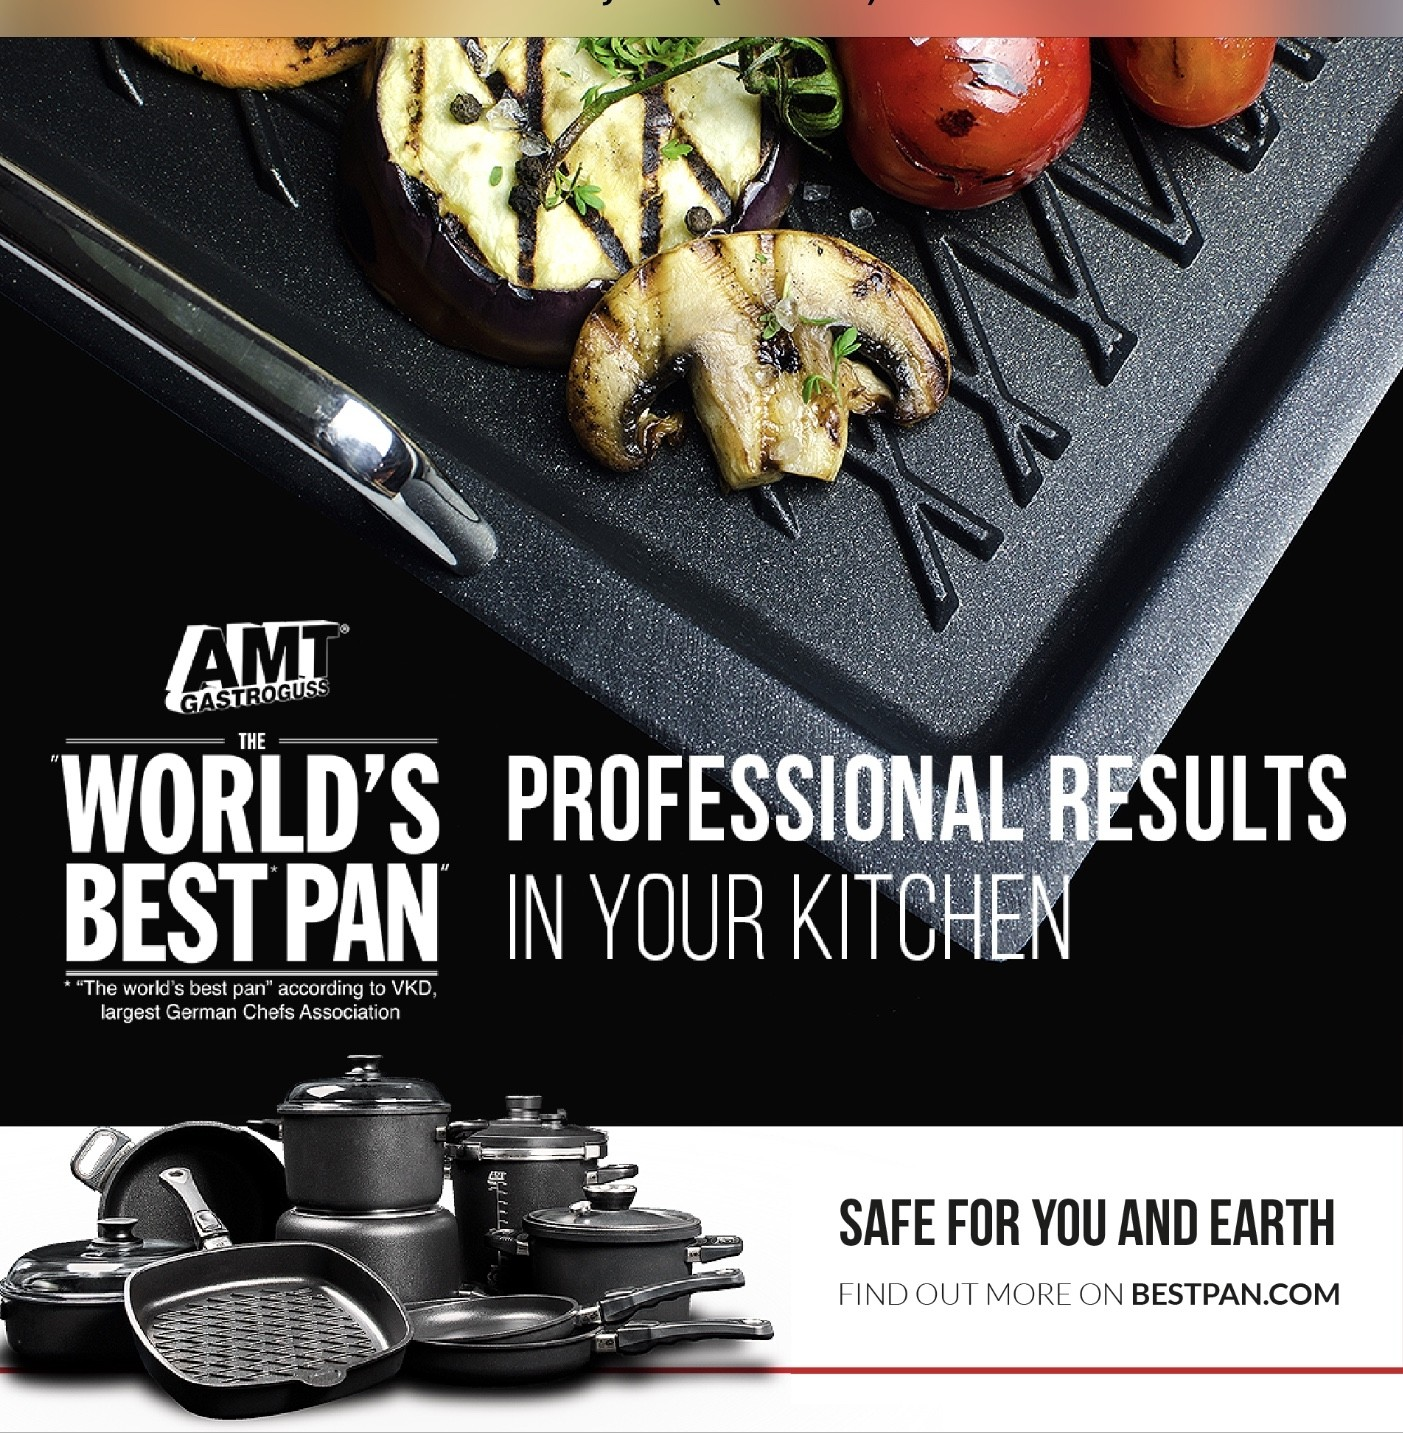 Puchase AMT bbq grill sheet at smithsofloughton.com